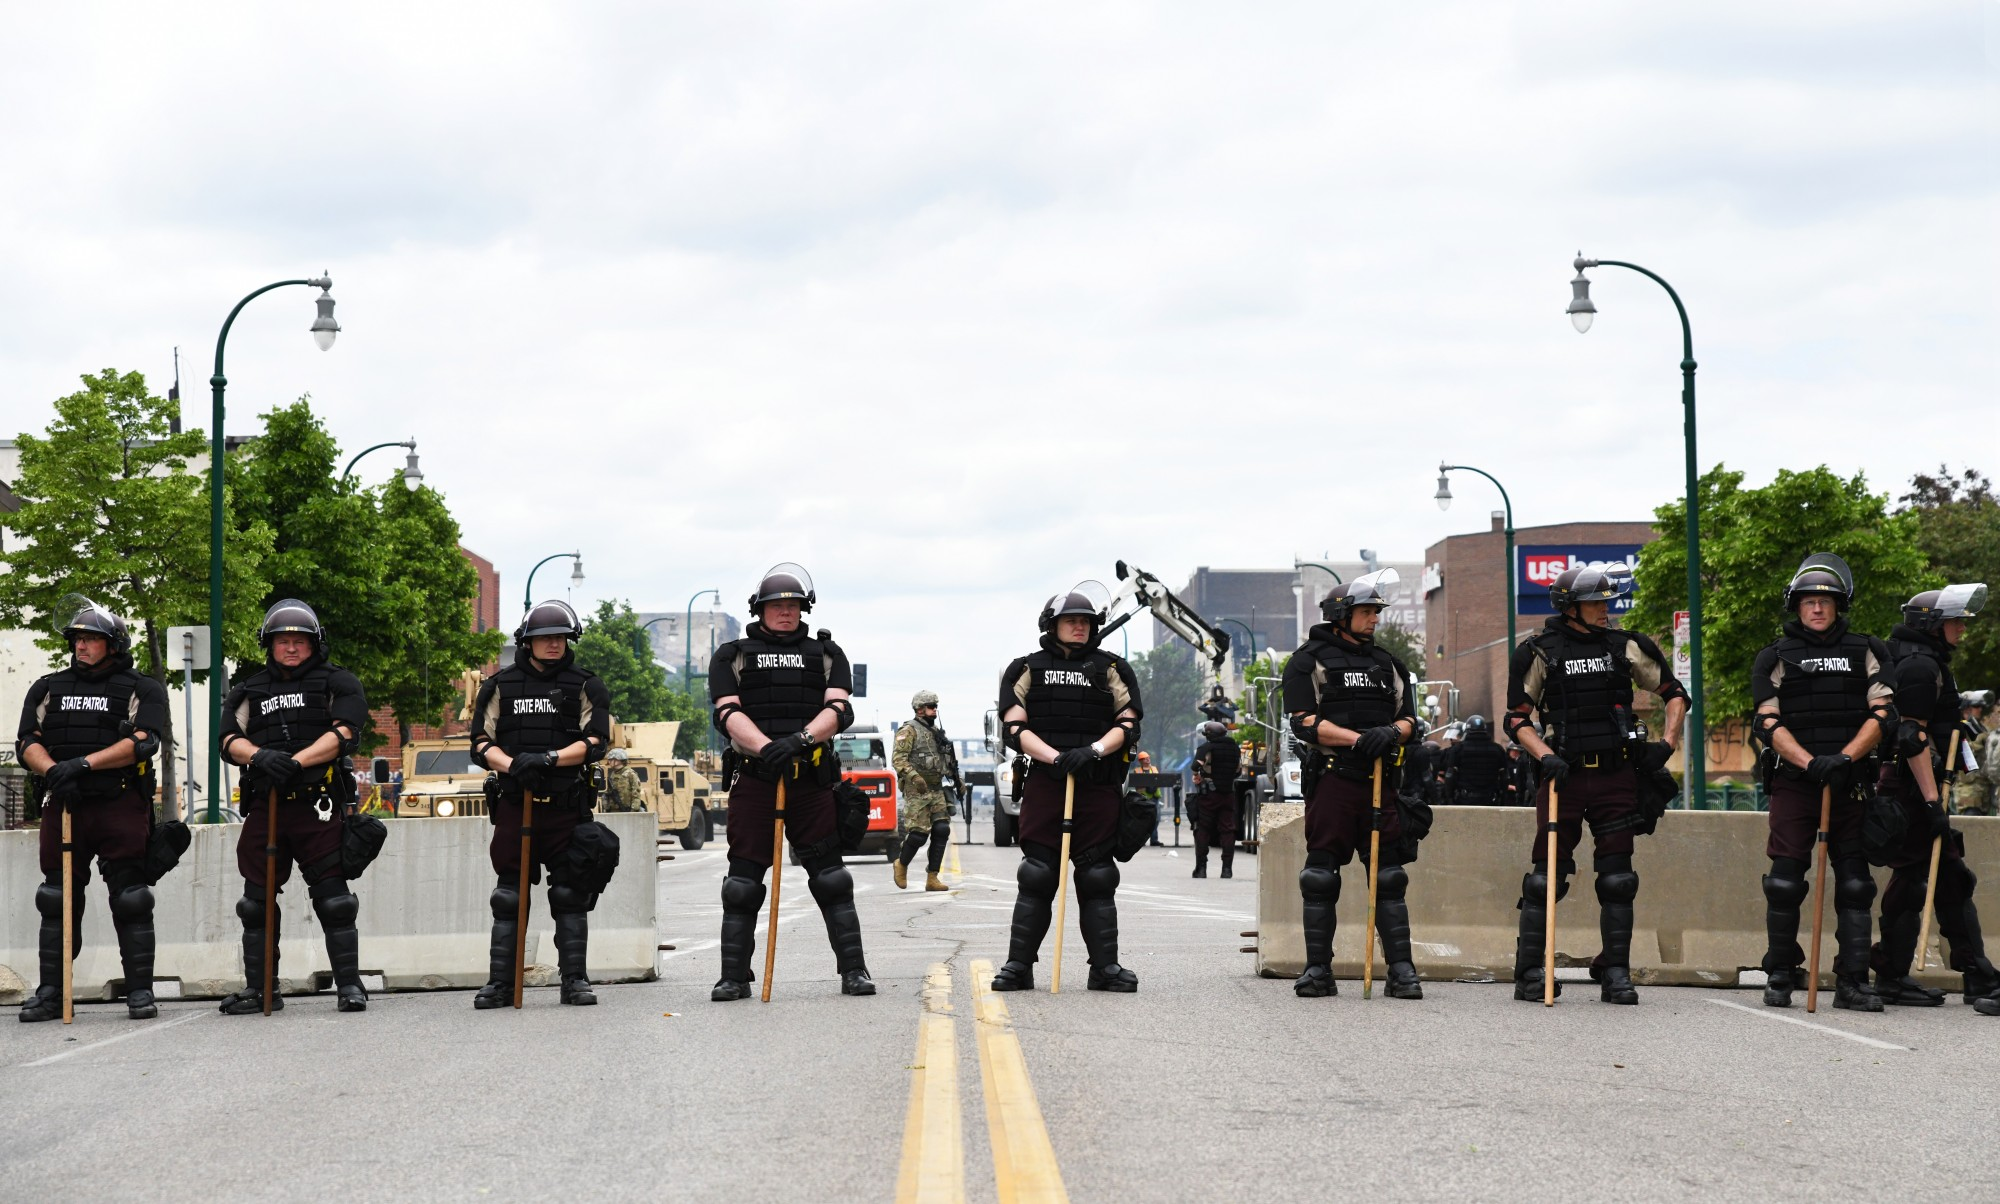 State Patrol officers and National Guard occupy East Lake Street on Friday, May 29.